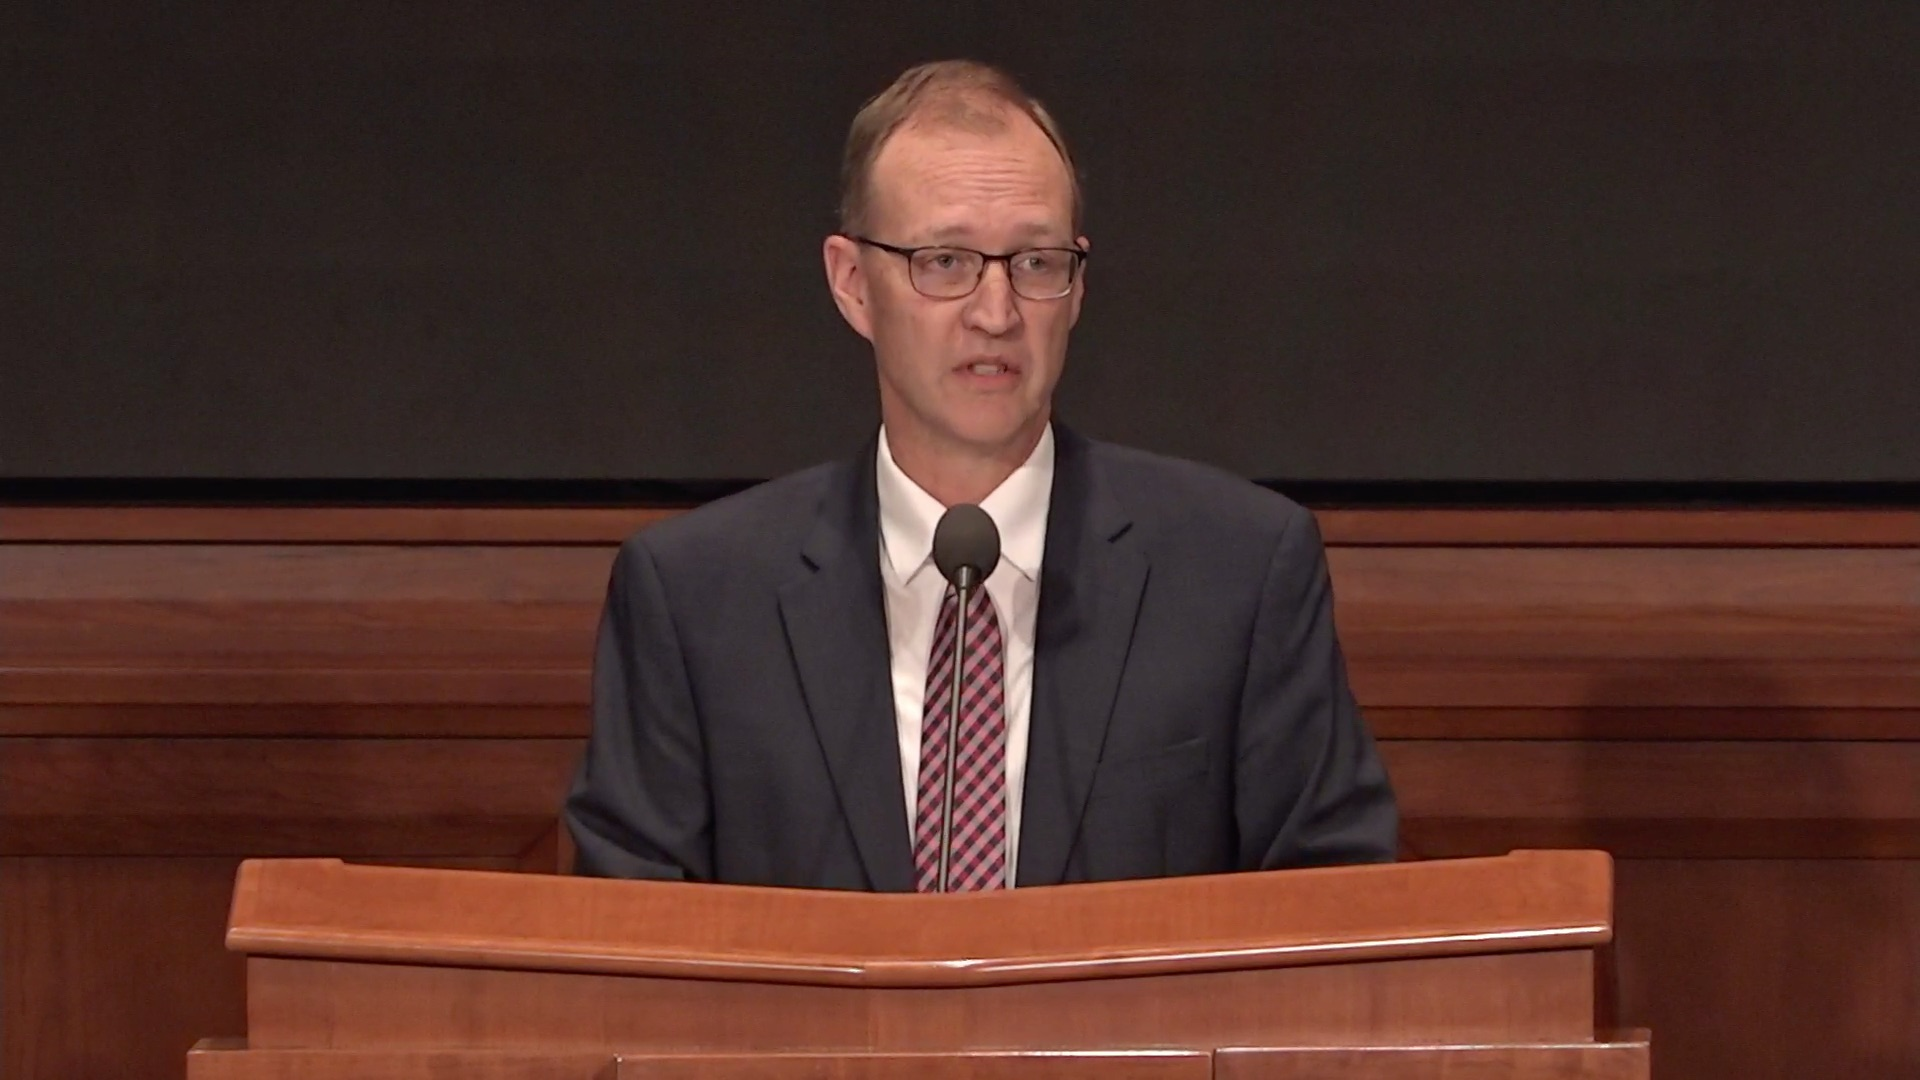 Chad Webb, Seminaries and Institutes administrator, speaks during the Seminaries and Institutes Annual Training Broadcast on June 12, 2019.